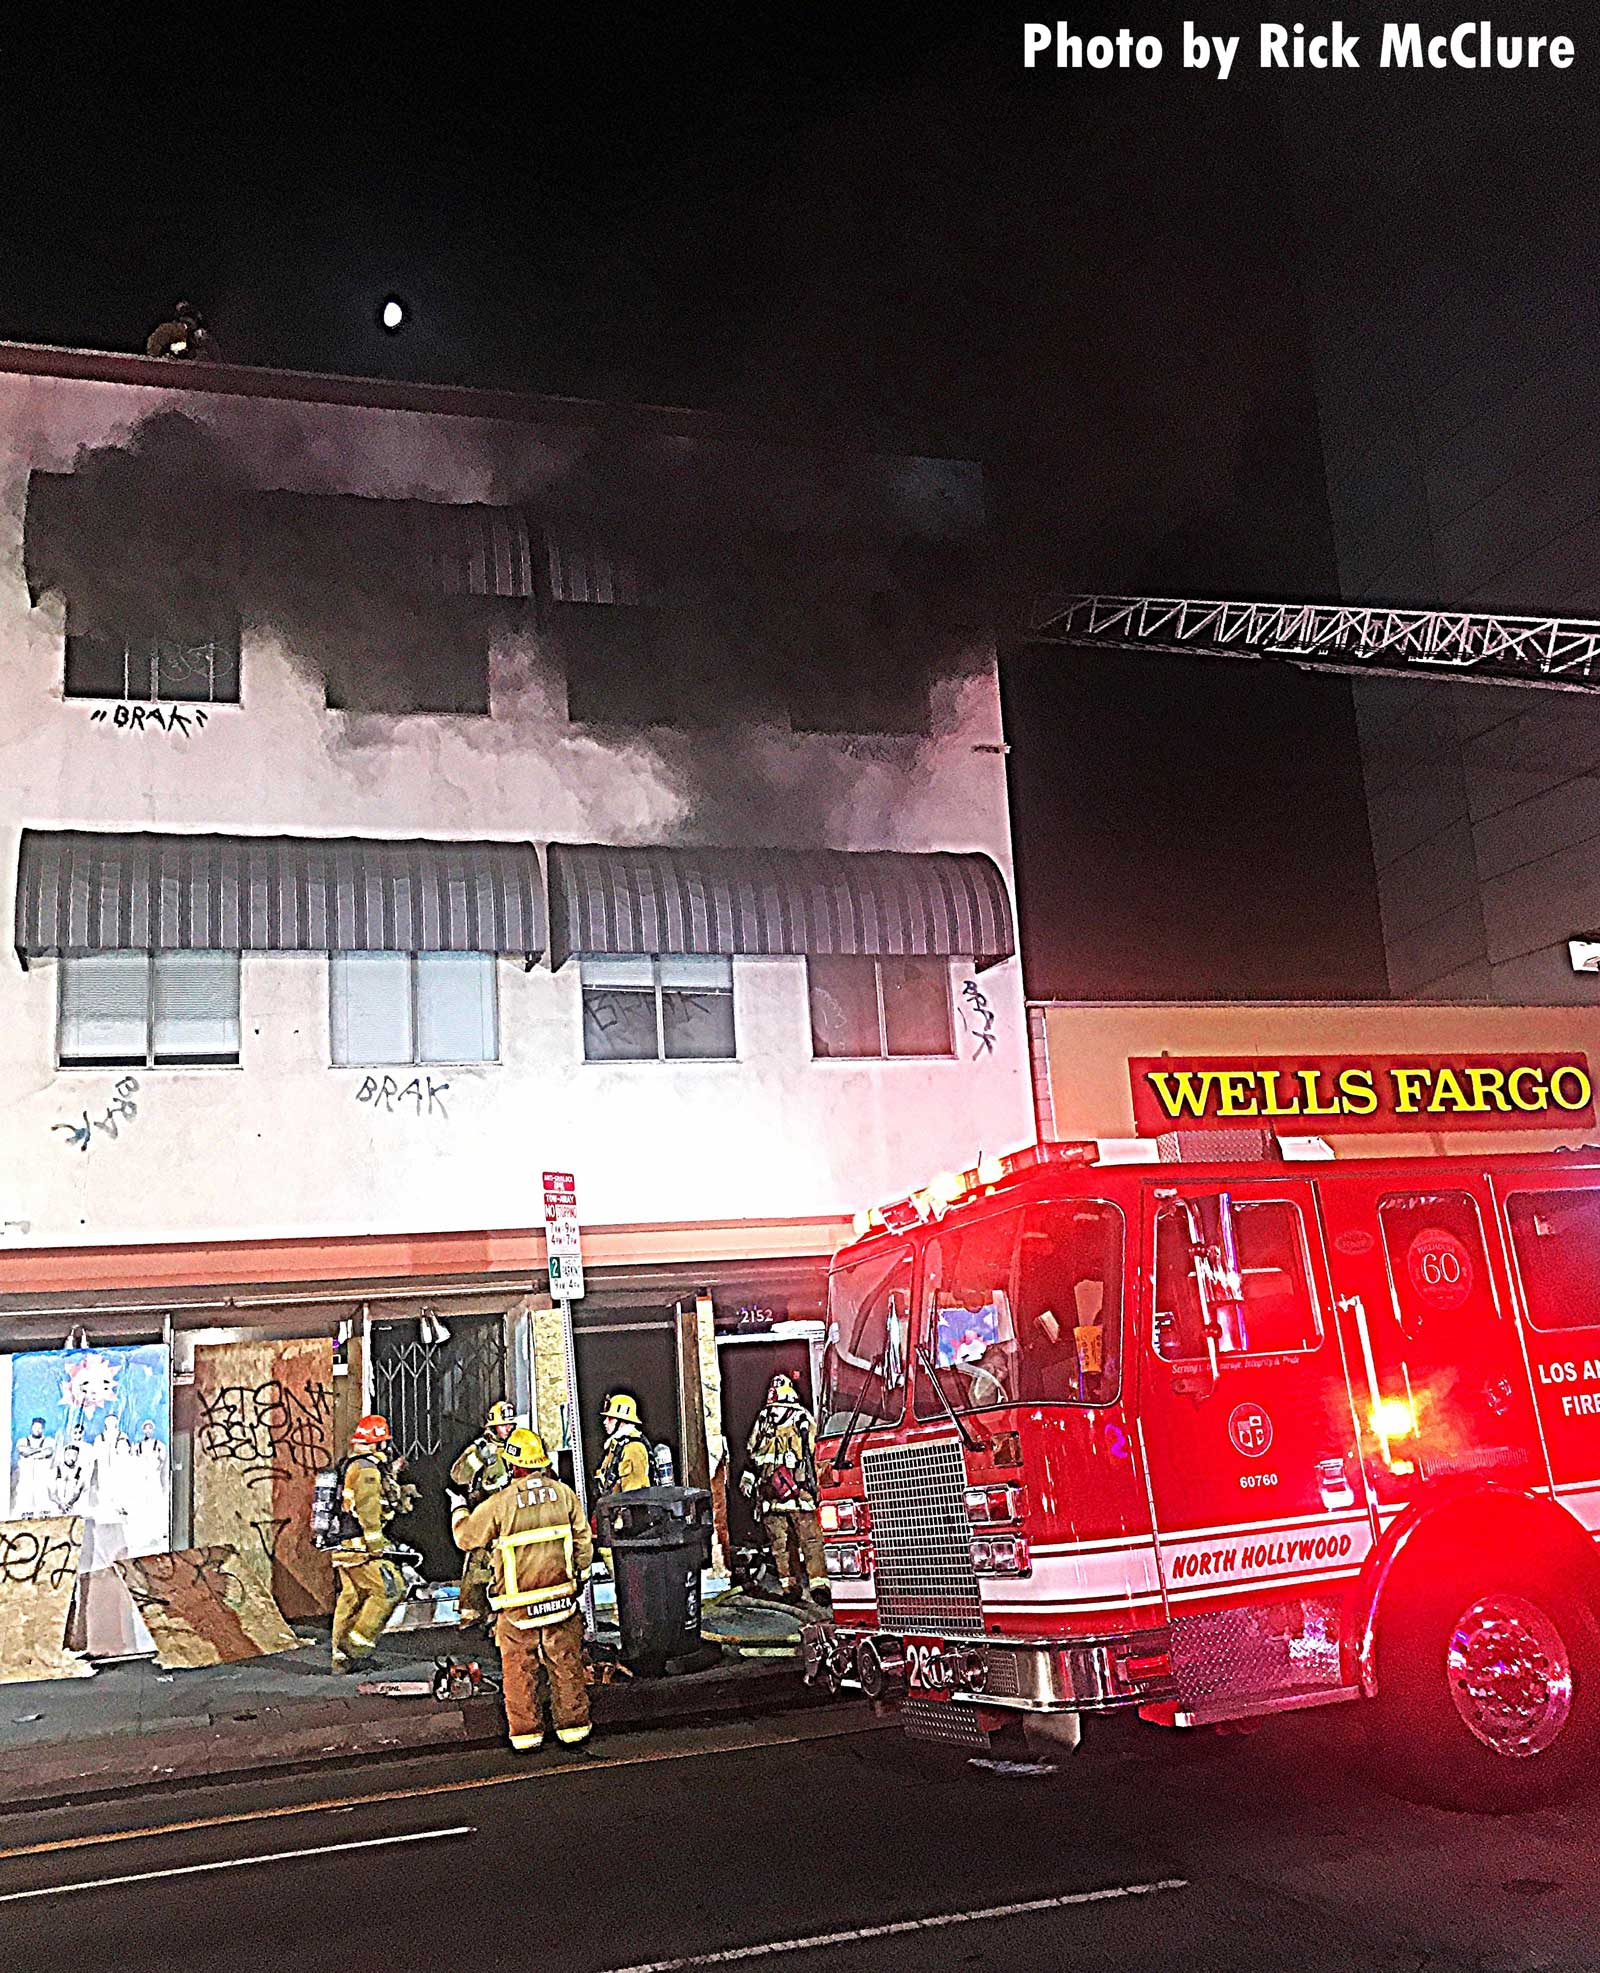 City of Los Angeles fire personnel and fire engine at the scene